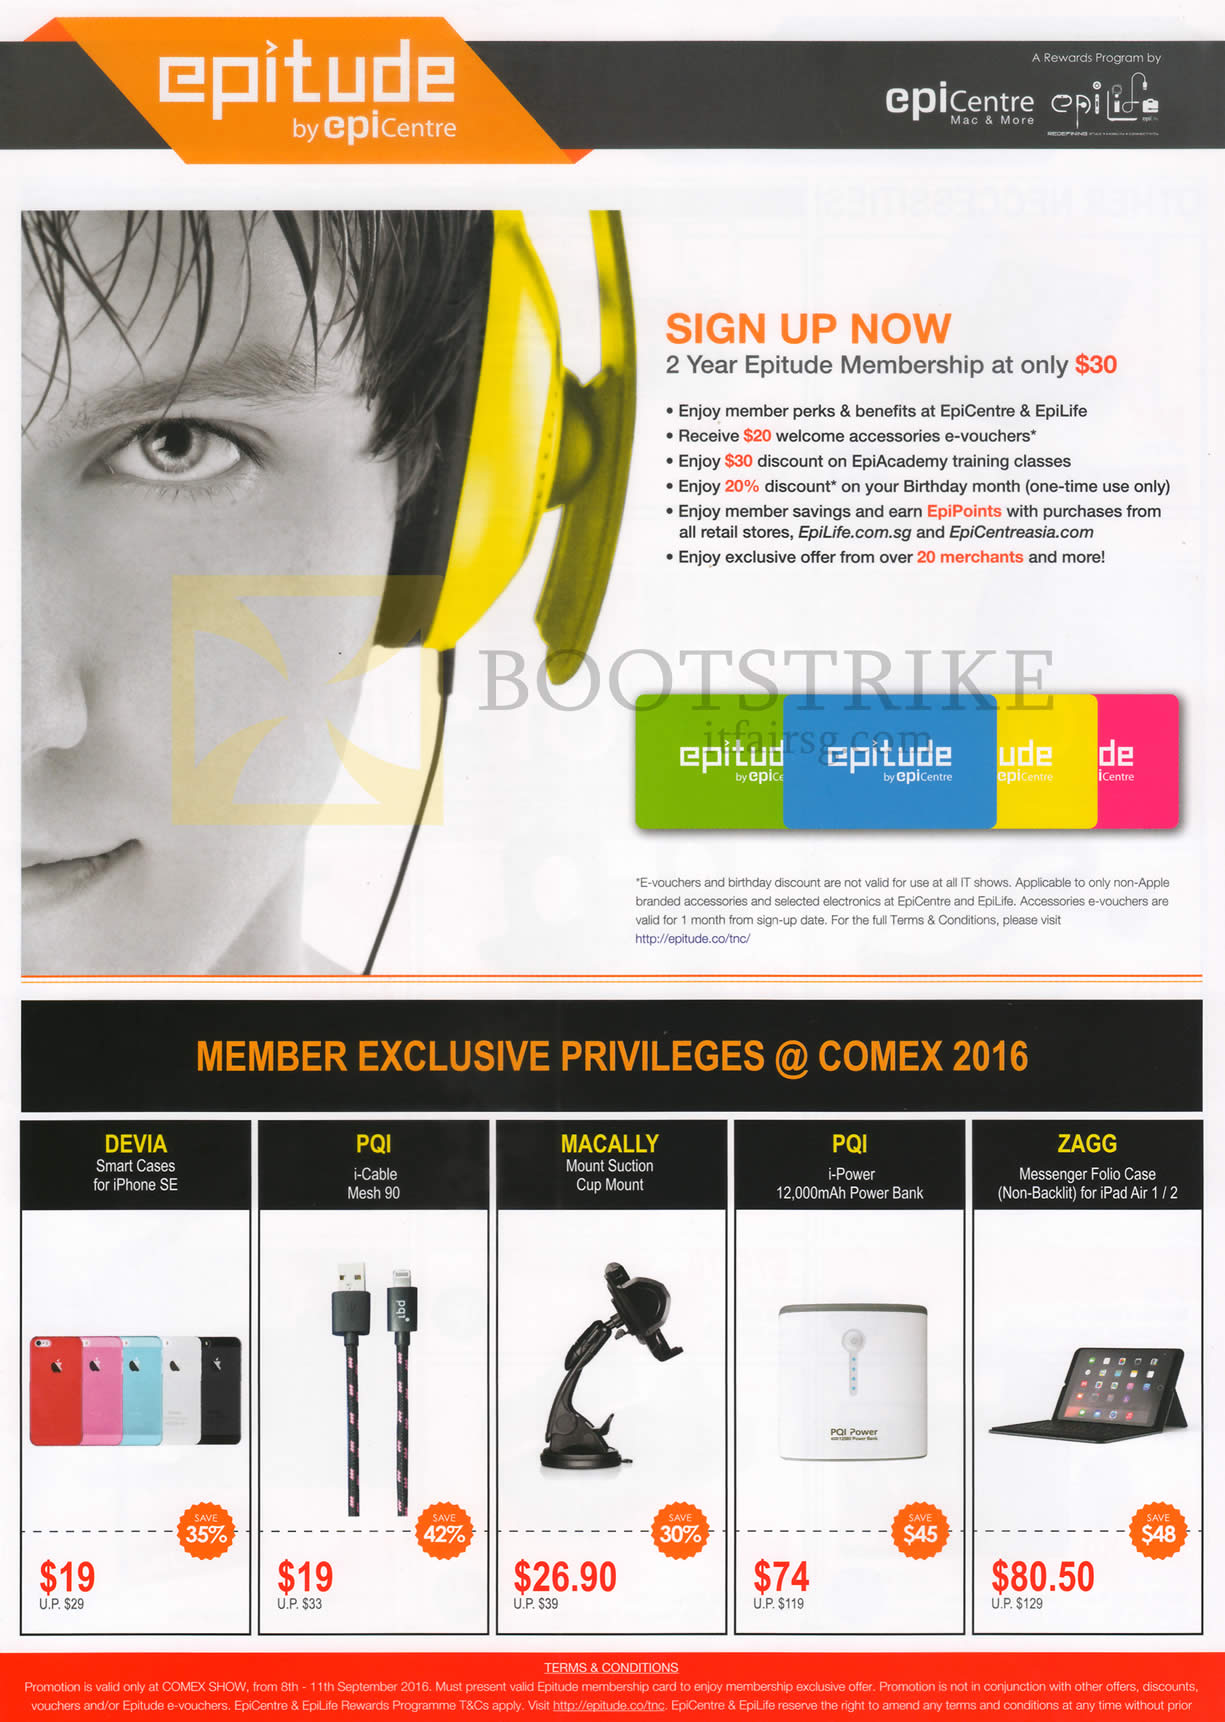 COMEX 2016 price list image brochure of EpiCentre Epitude Membership, Case, Cable, Power Bank, Folio Case